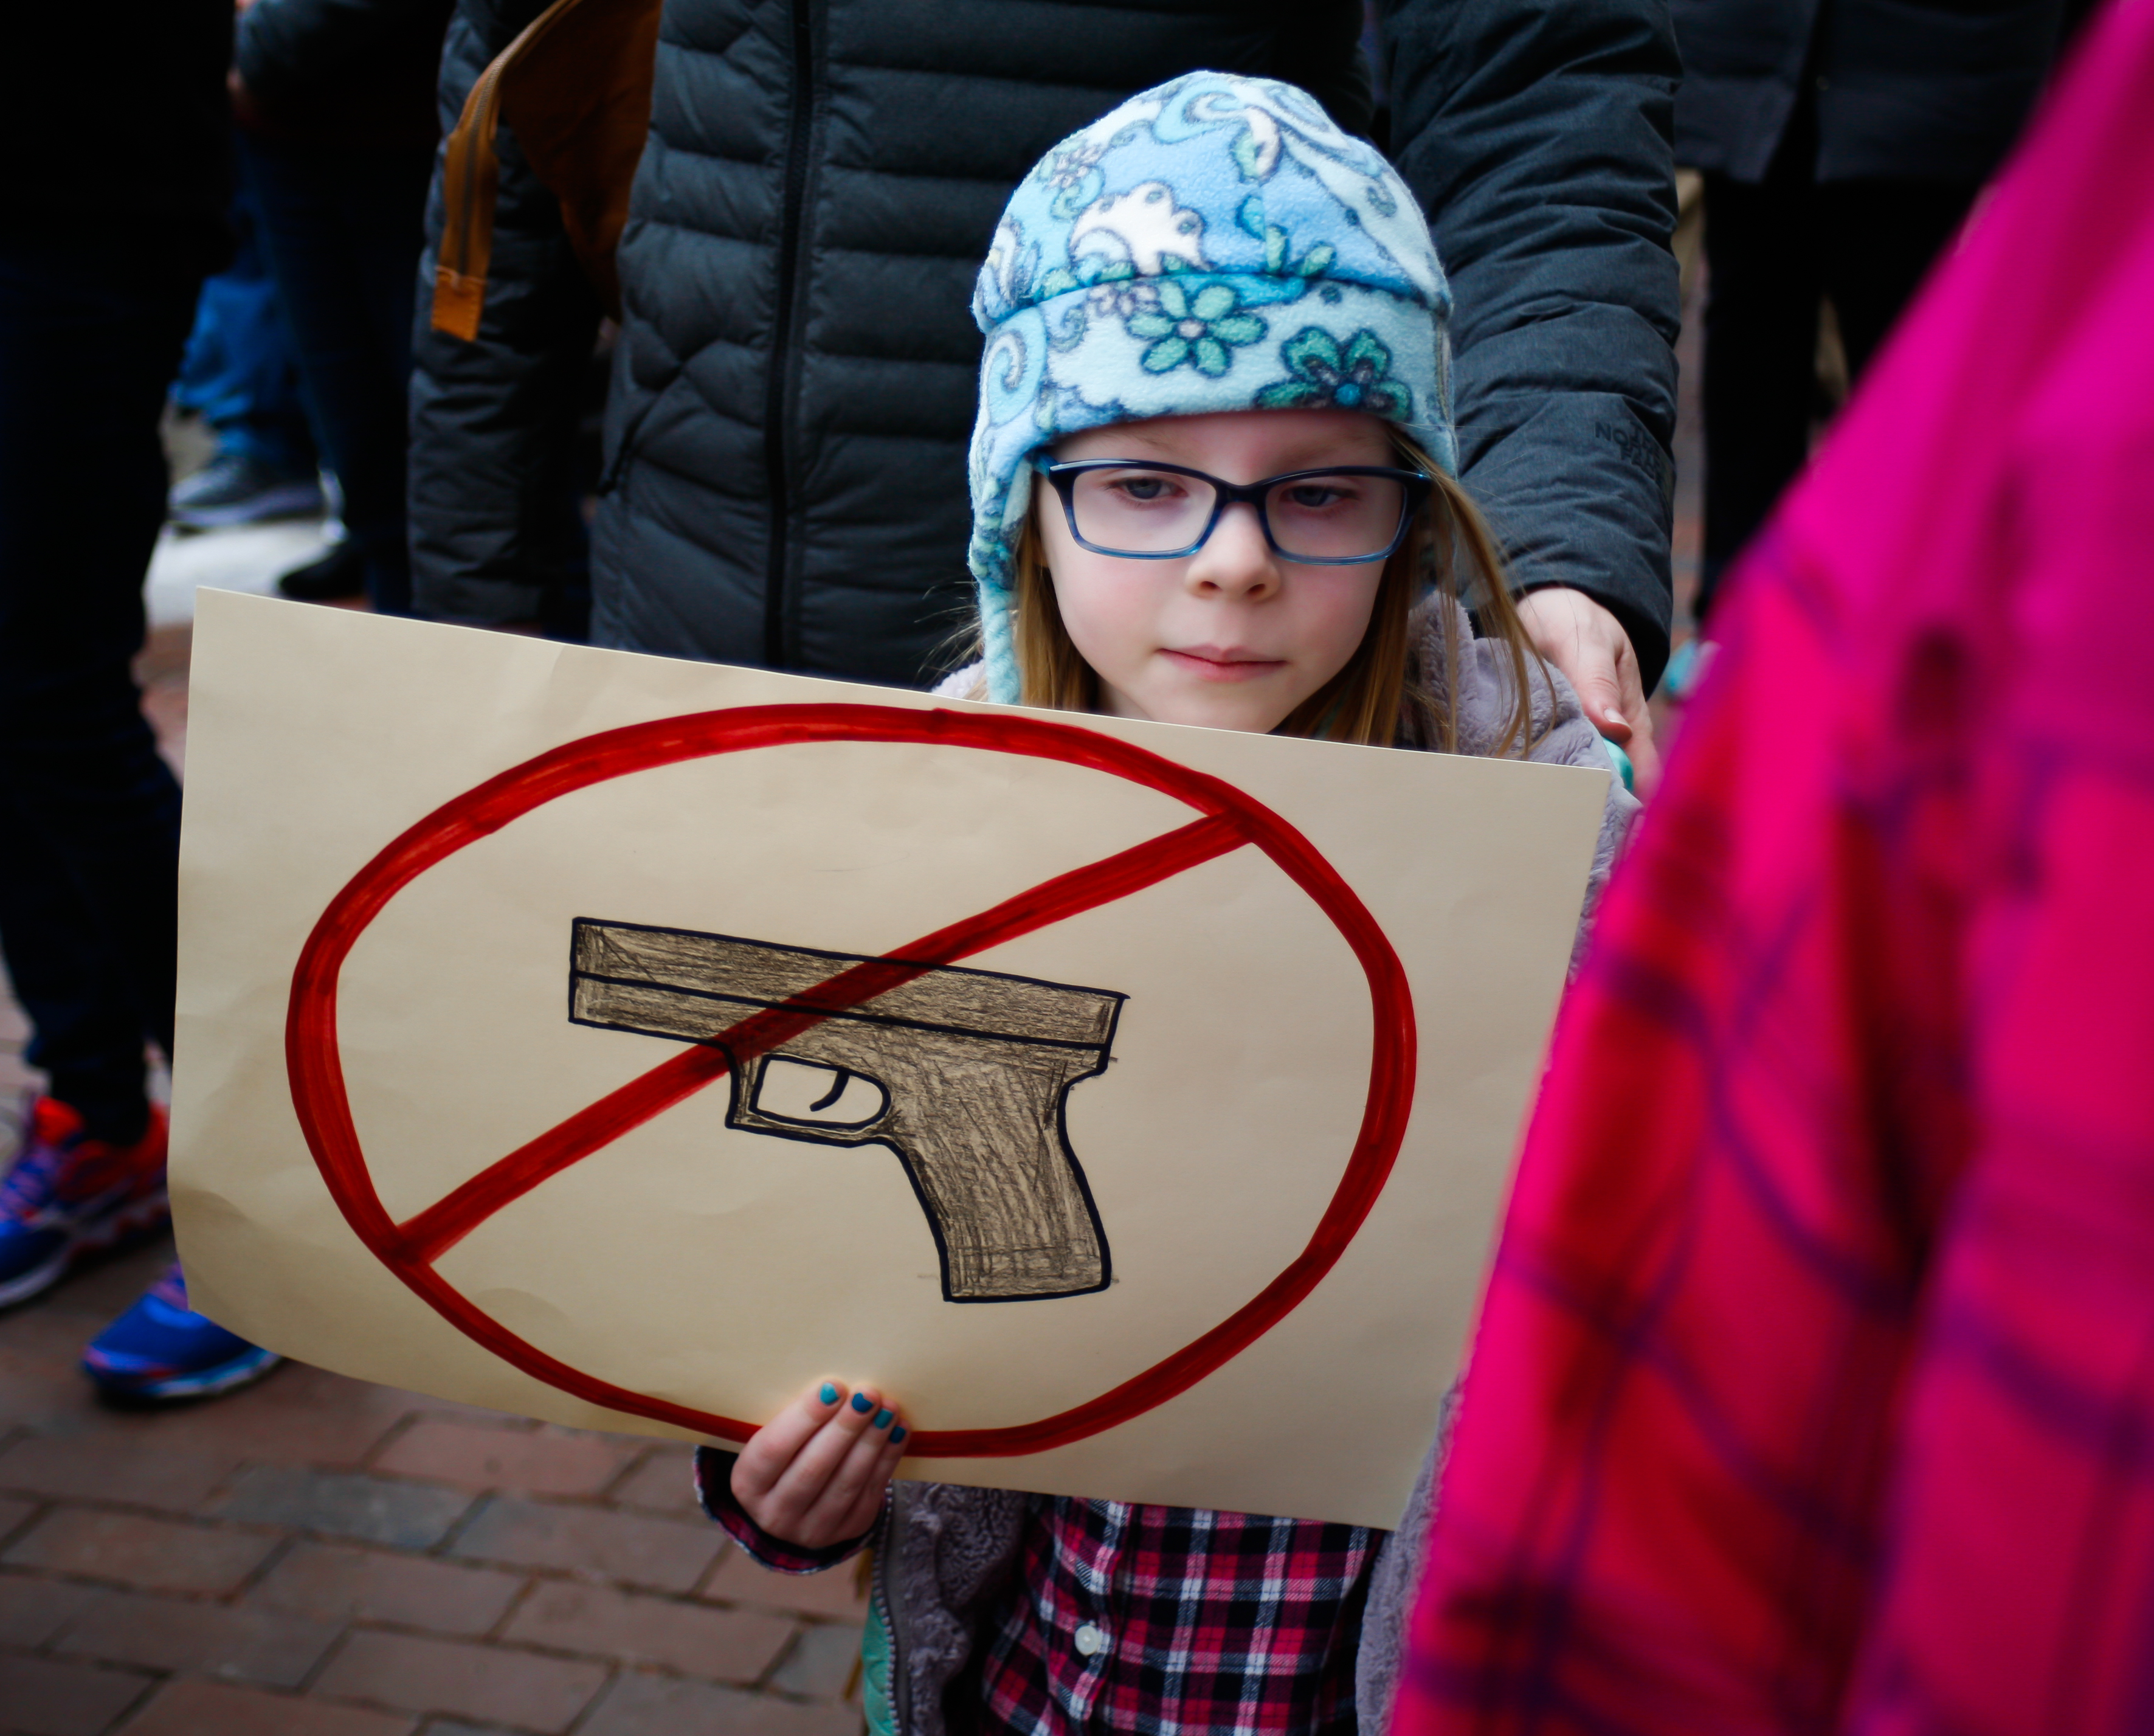 Inaction by Politicians on Gun Reform is Harming Children